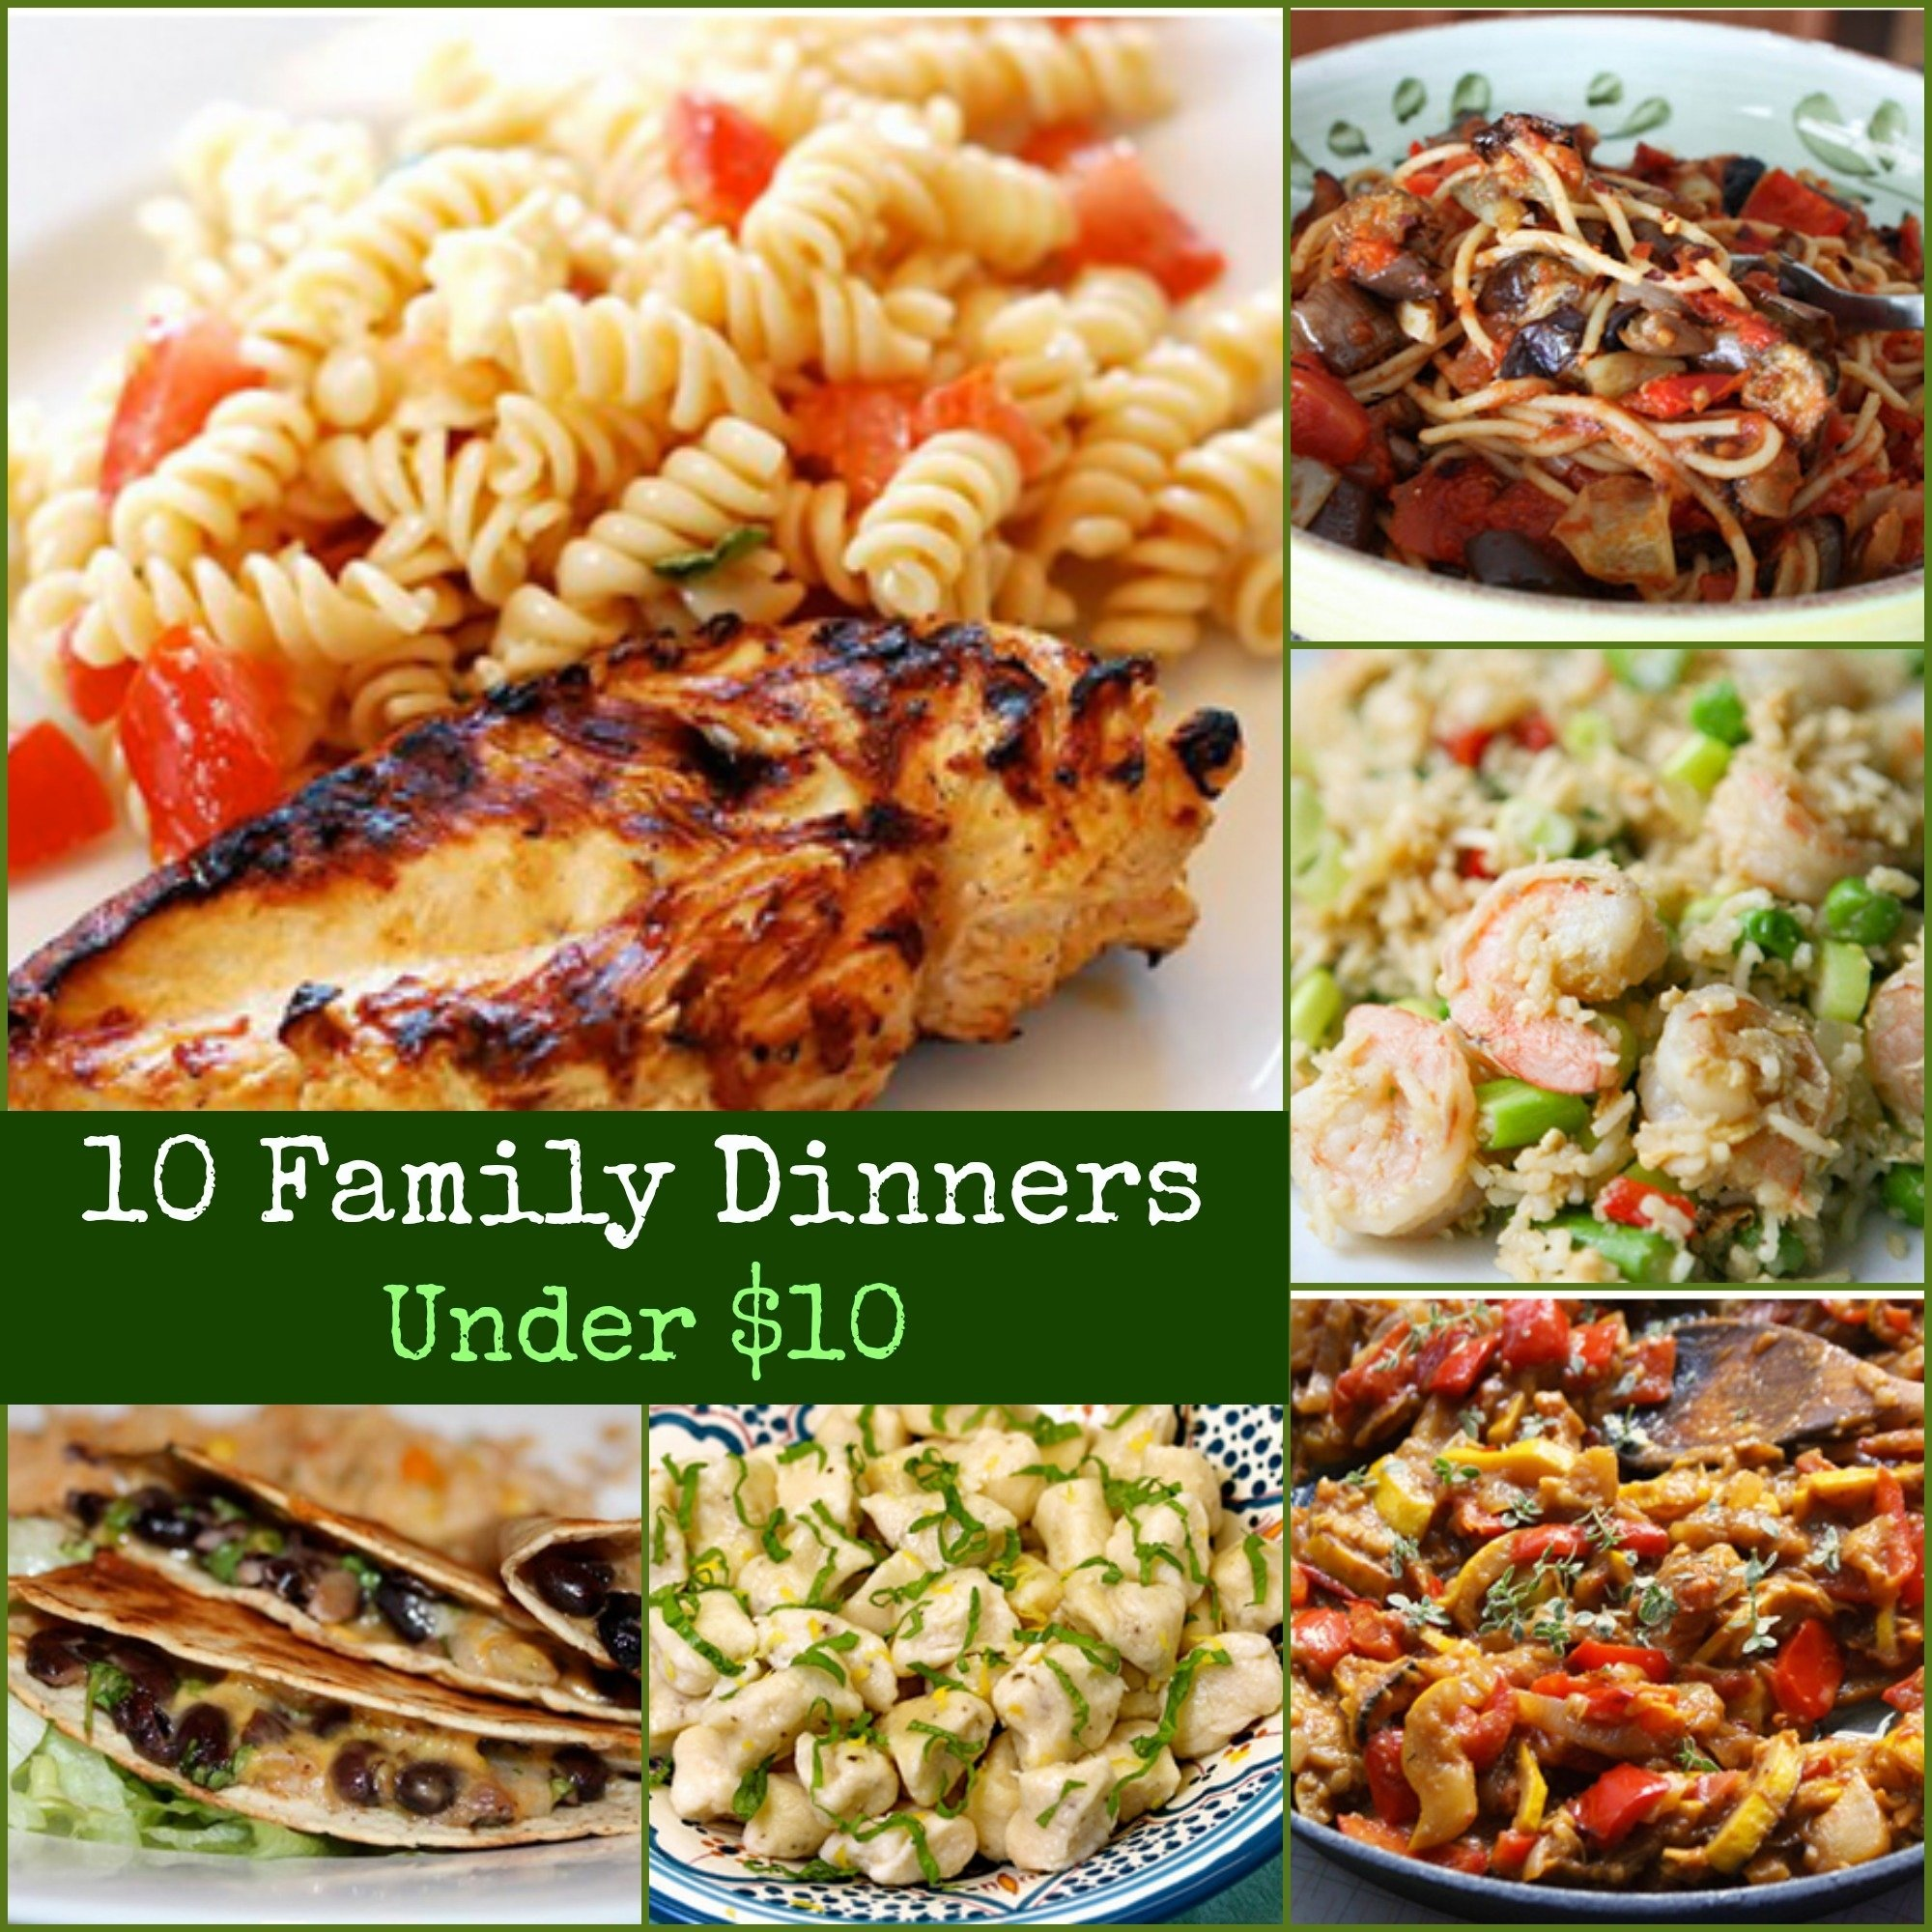 10 Unique Fast Dinner Ideas For Family photos 10 quick dinner ideas drawings art gallery 2020